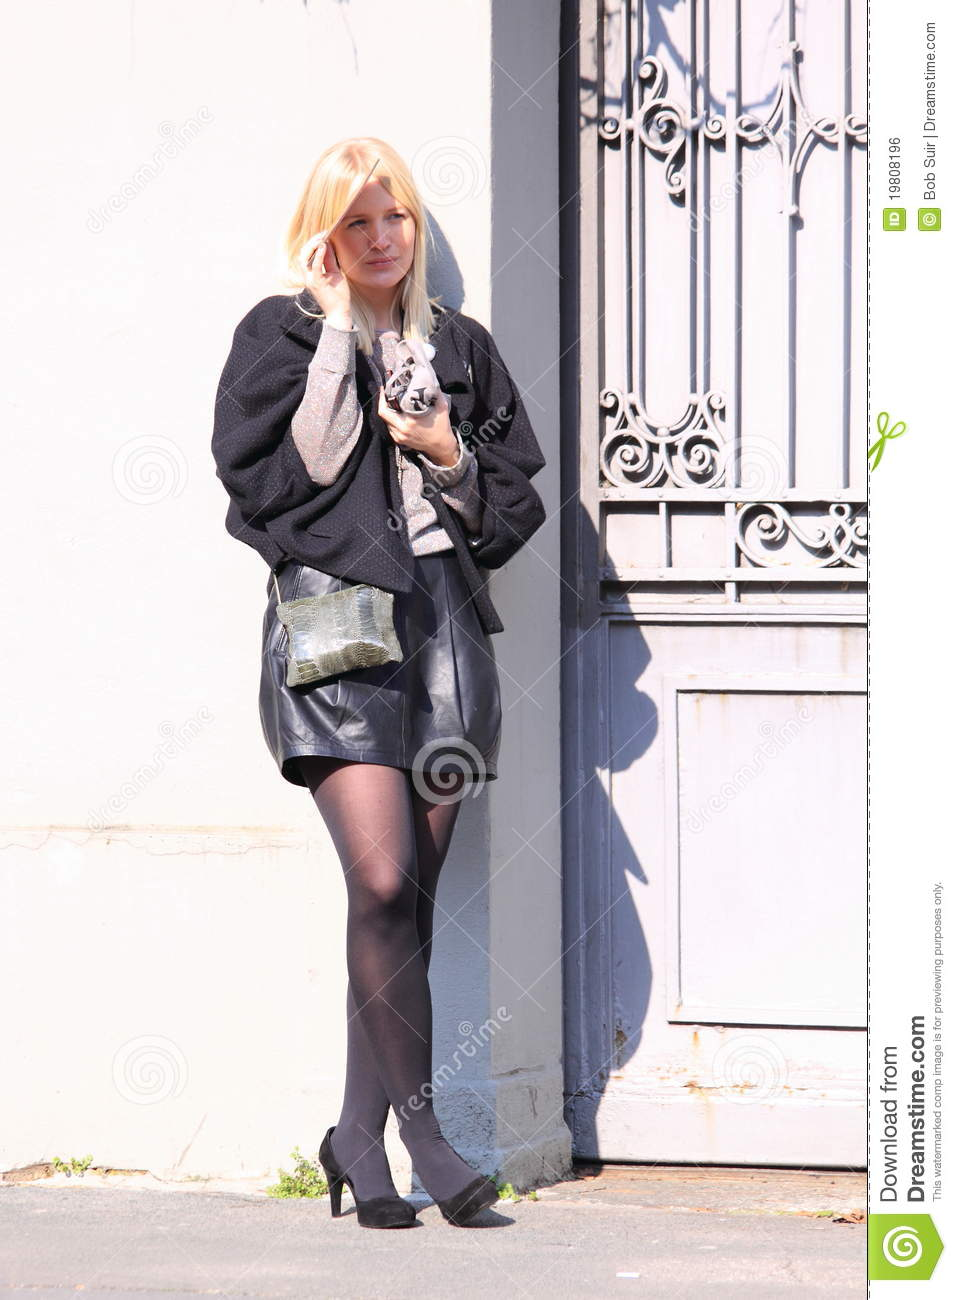 Milan streetstyle city fashion leather skirt